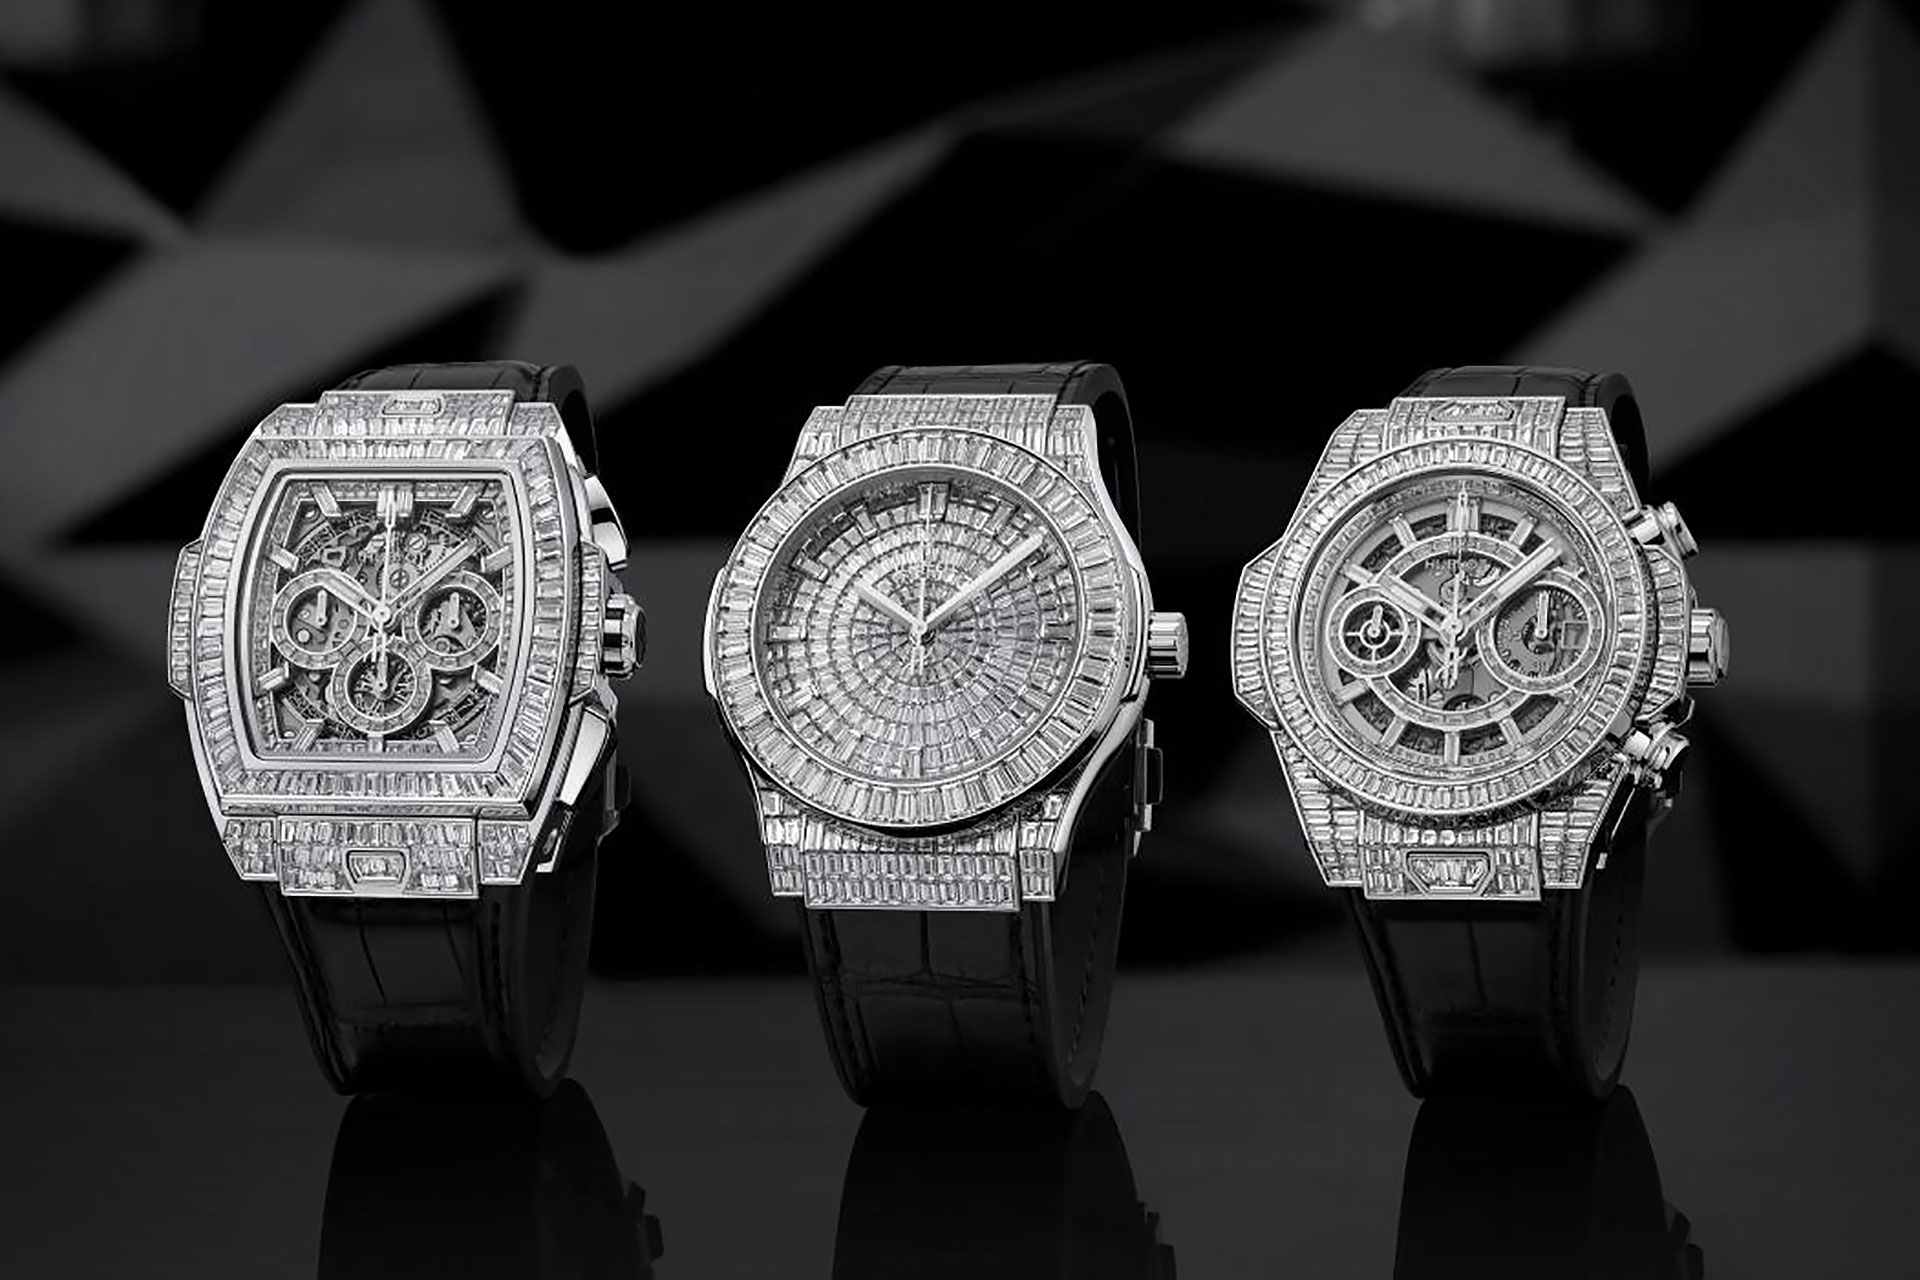 Hublot 2020 High Jewelry Watch Collection